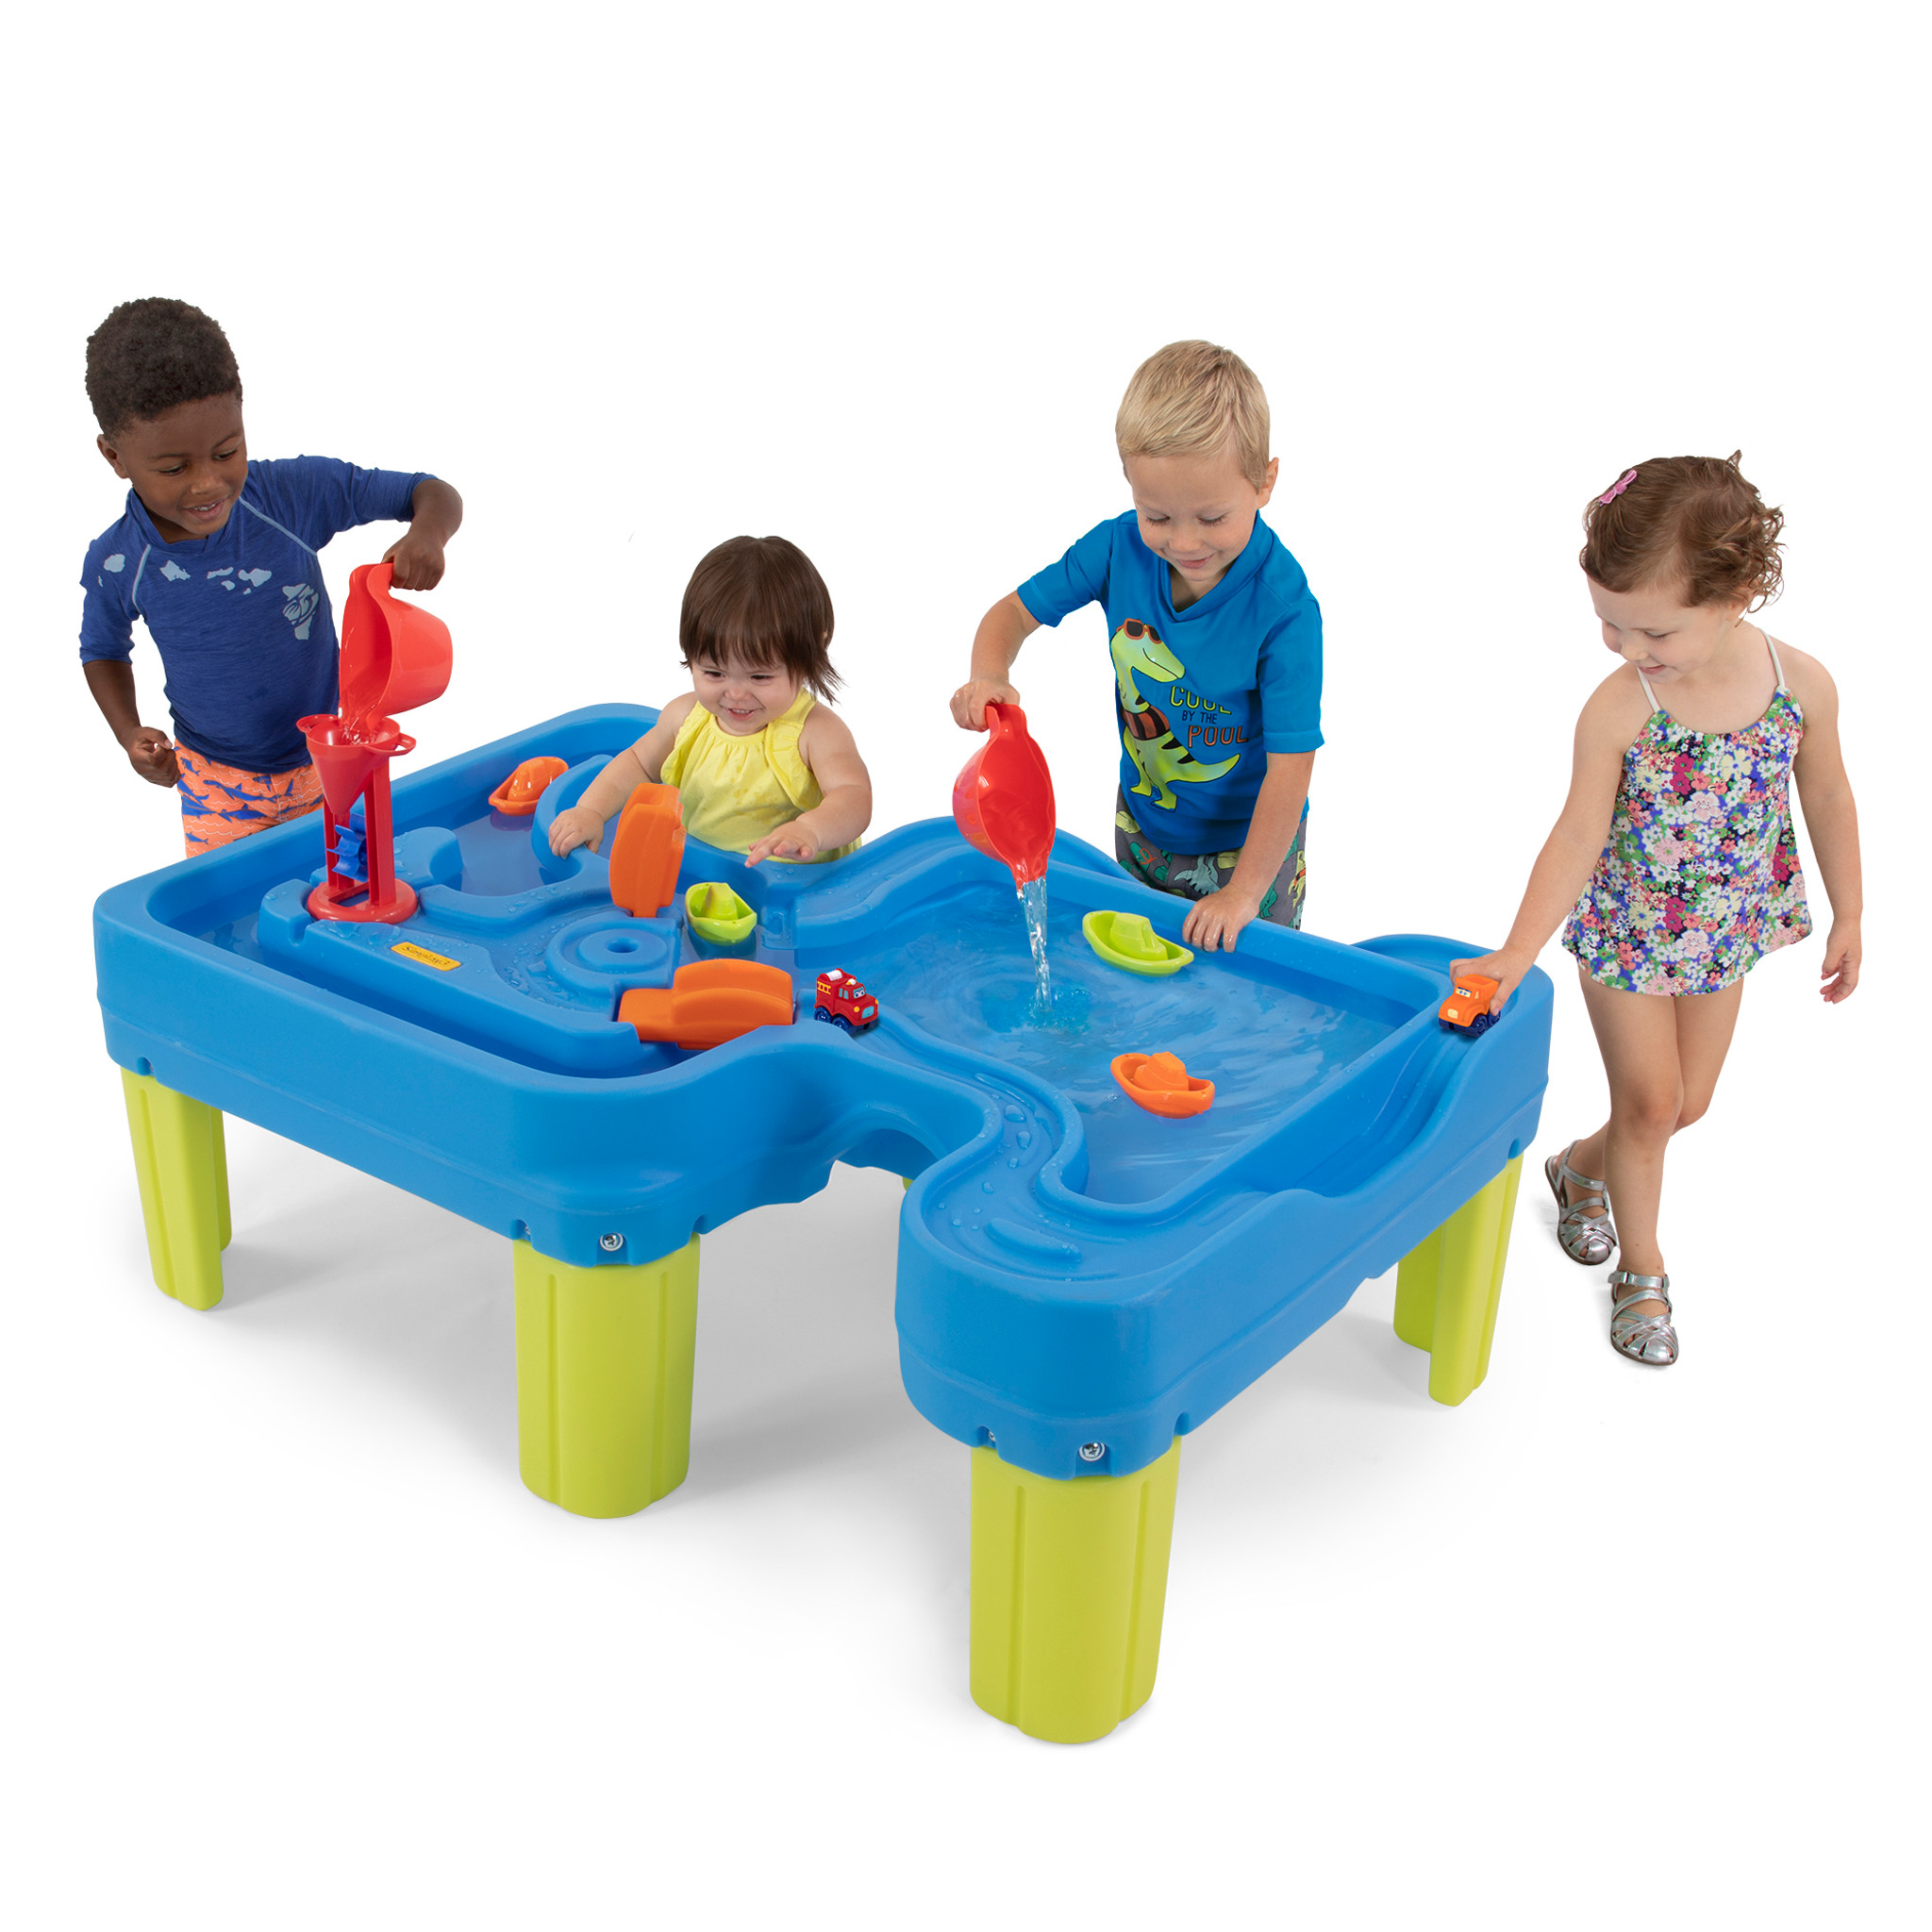 Kids playing with Big River and Roads Water Play Table.